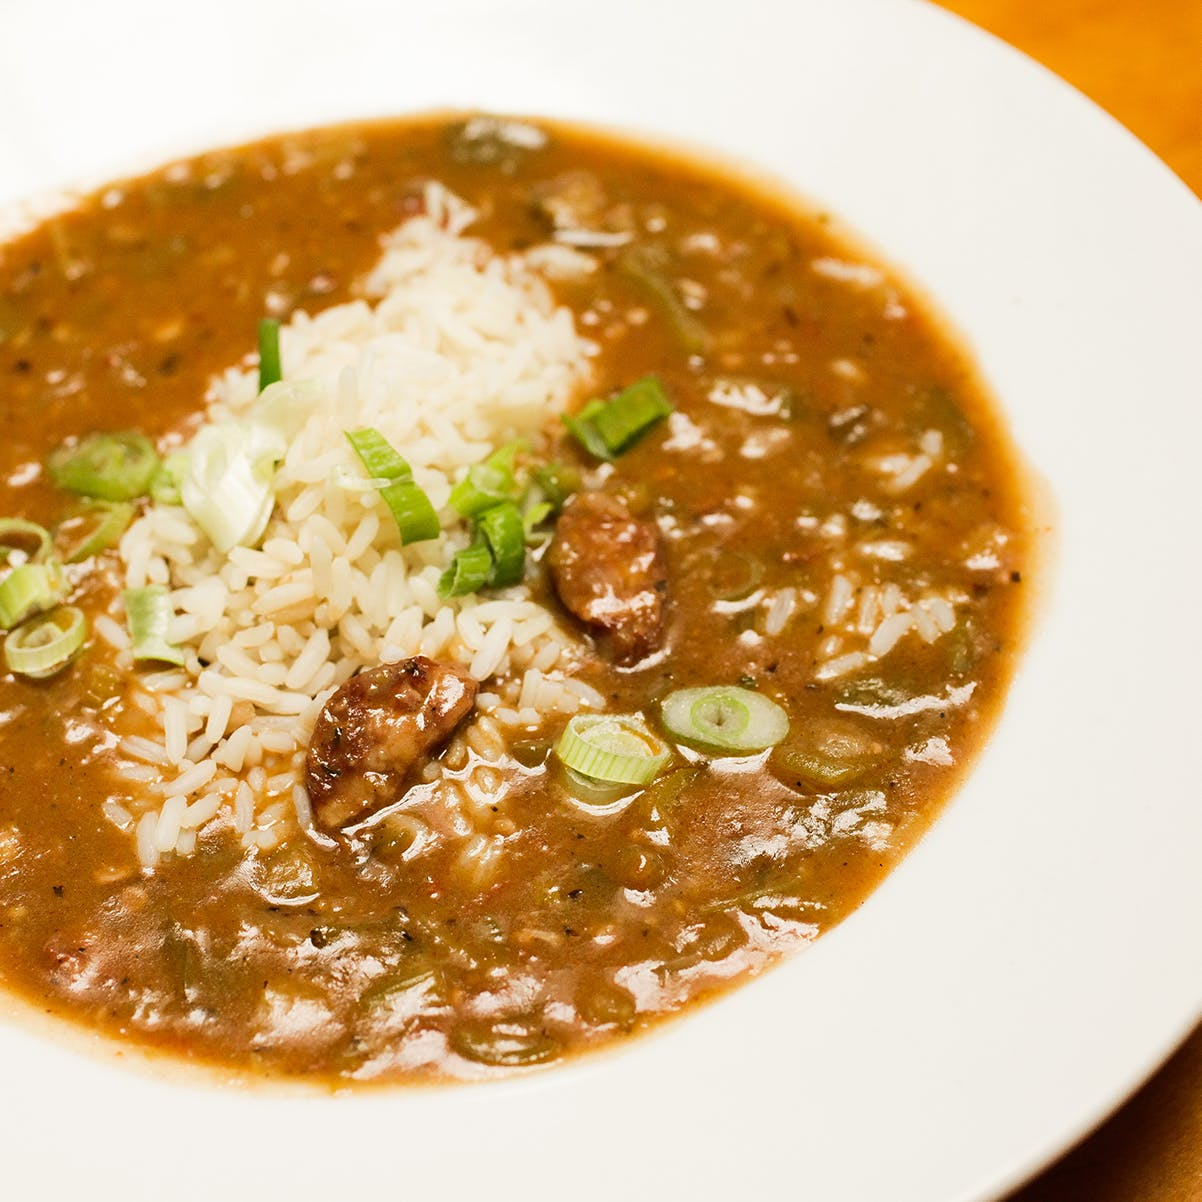 Gumbo Etouffee Red Beans Rice Choose Your Own 2 Pack By Brenda S French Soul Food Goldbelly